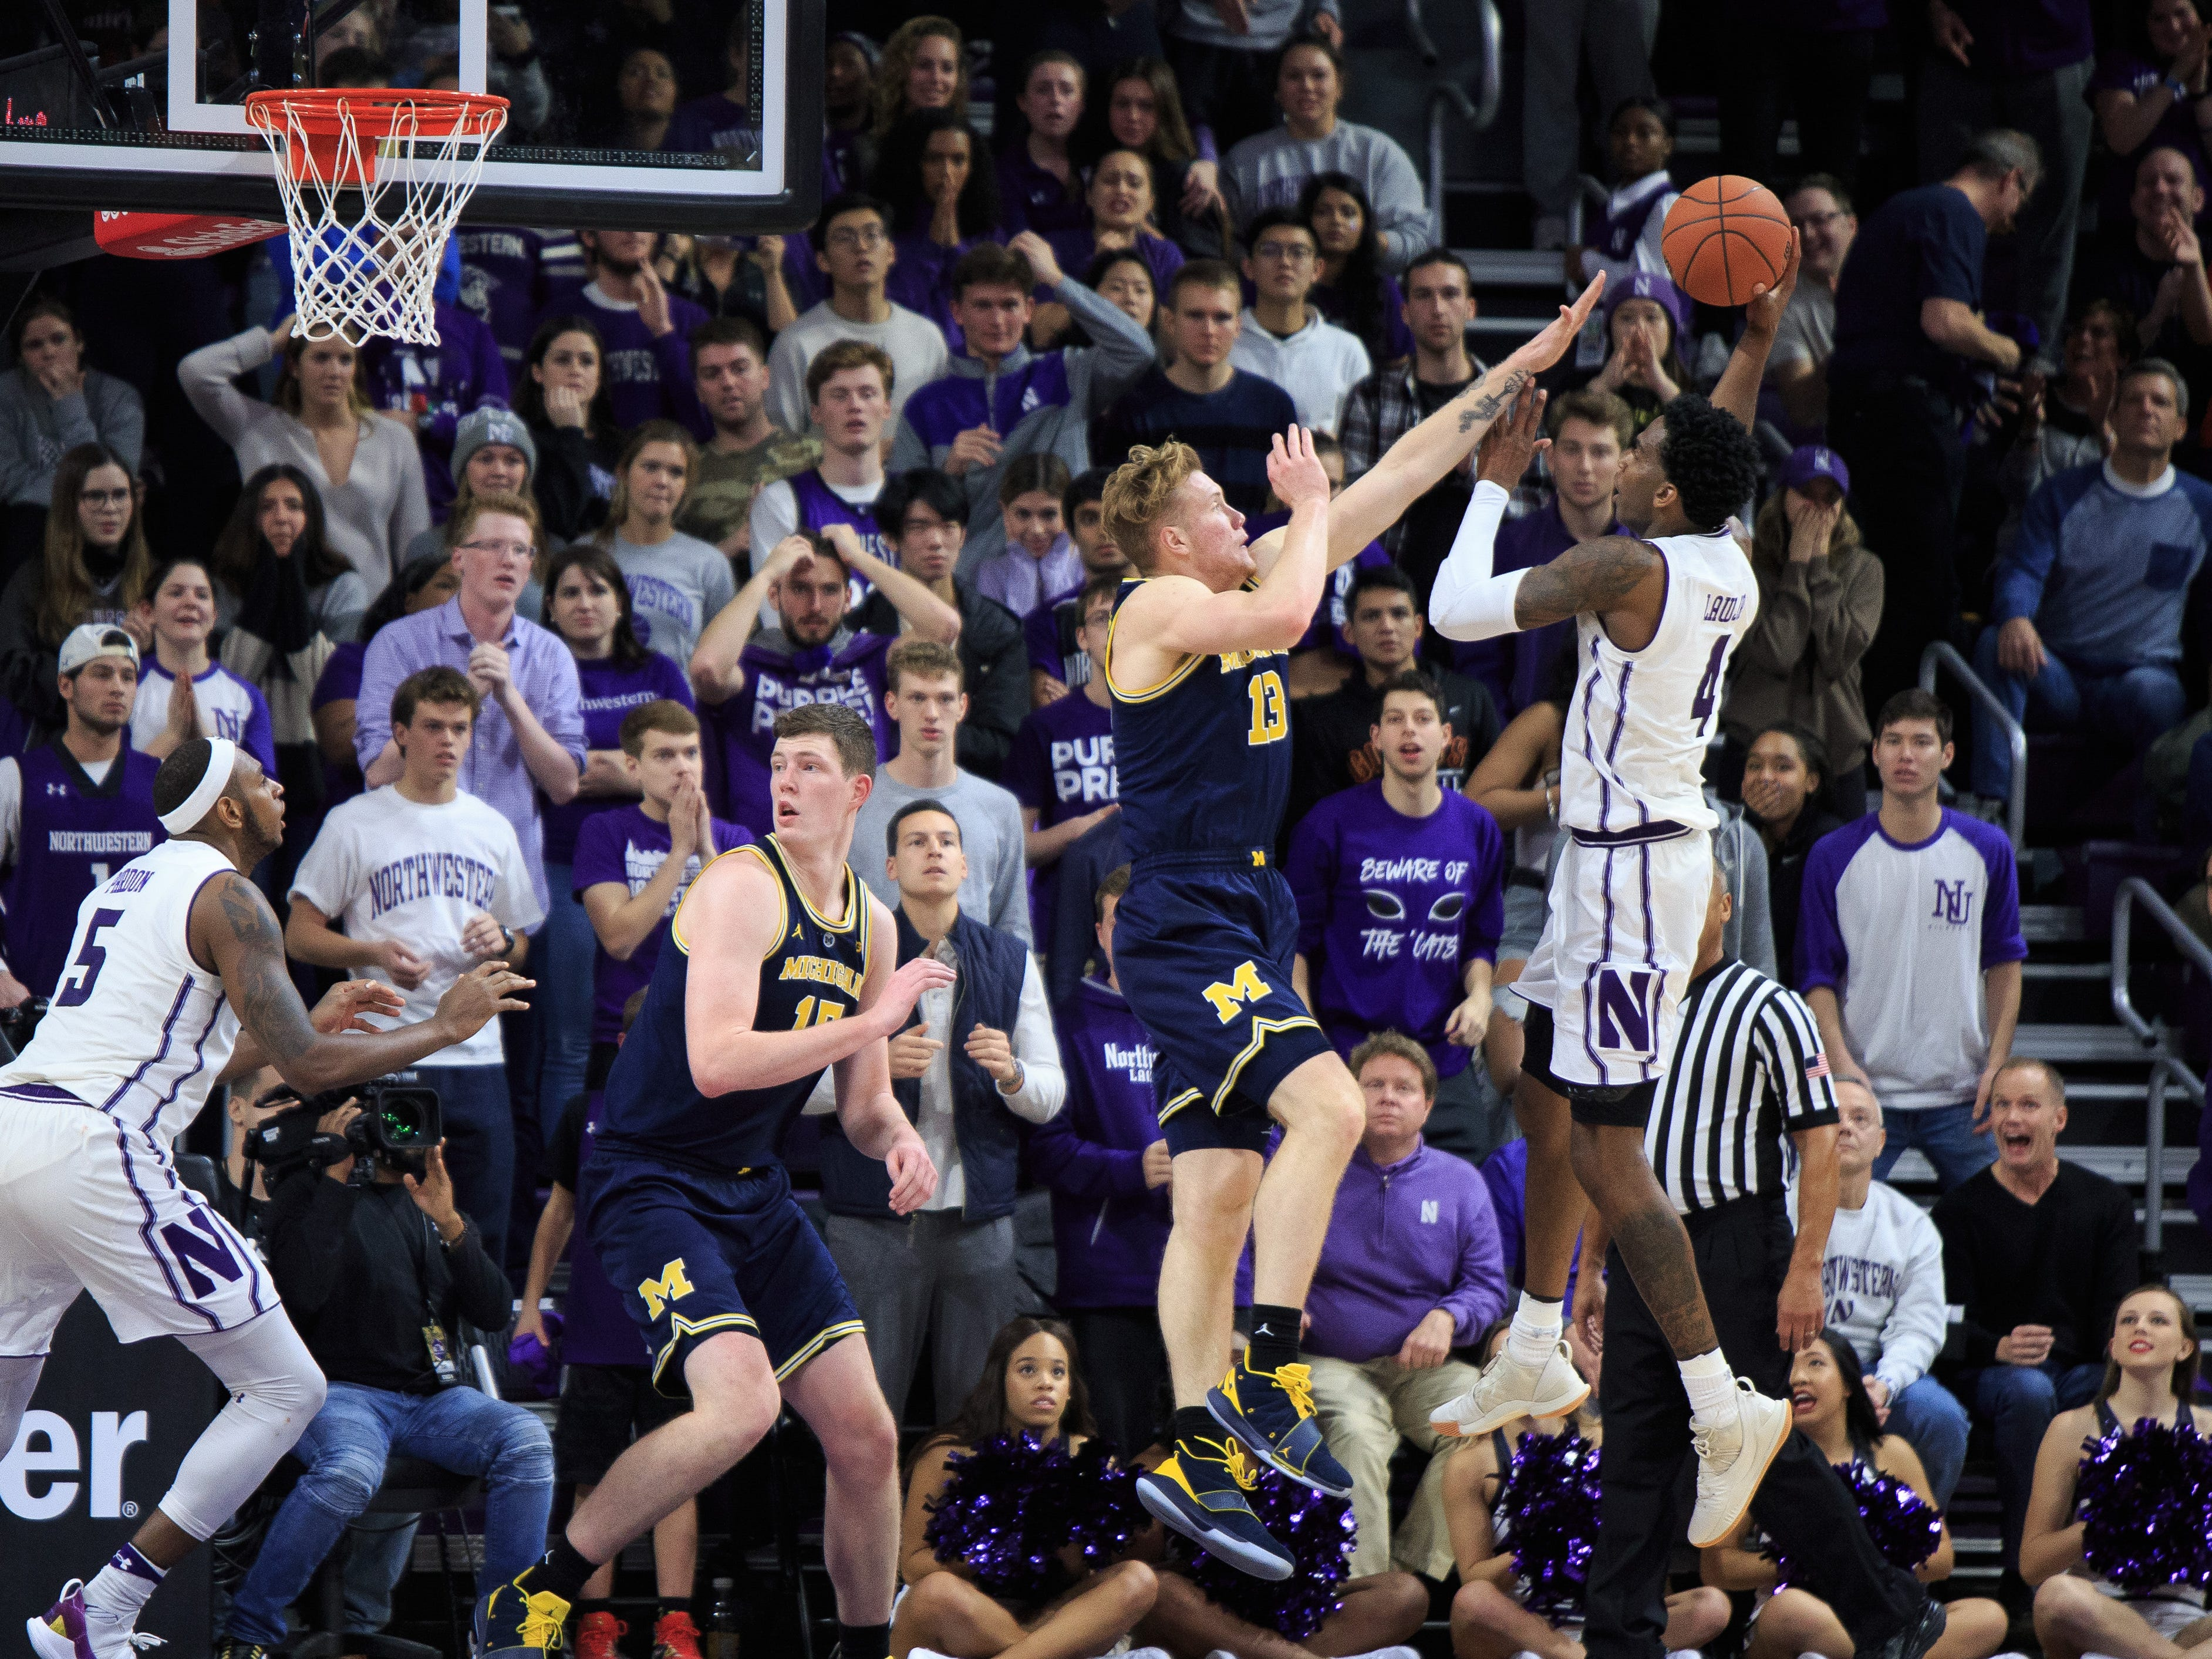 Northwestern's Vic Law takes a shot in the final minute of the second half of U-M's 62-60 win on Tuesday, Dec. 4, 2018, in Evanston, Ill.